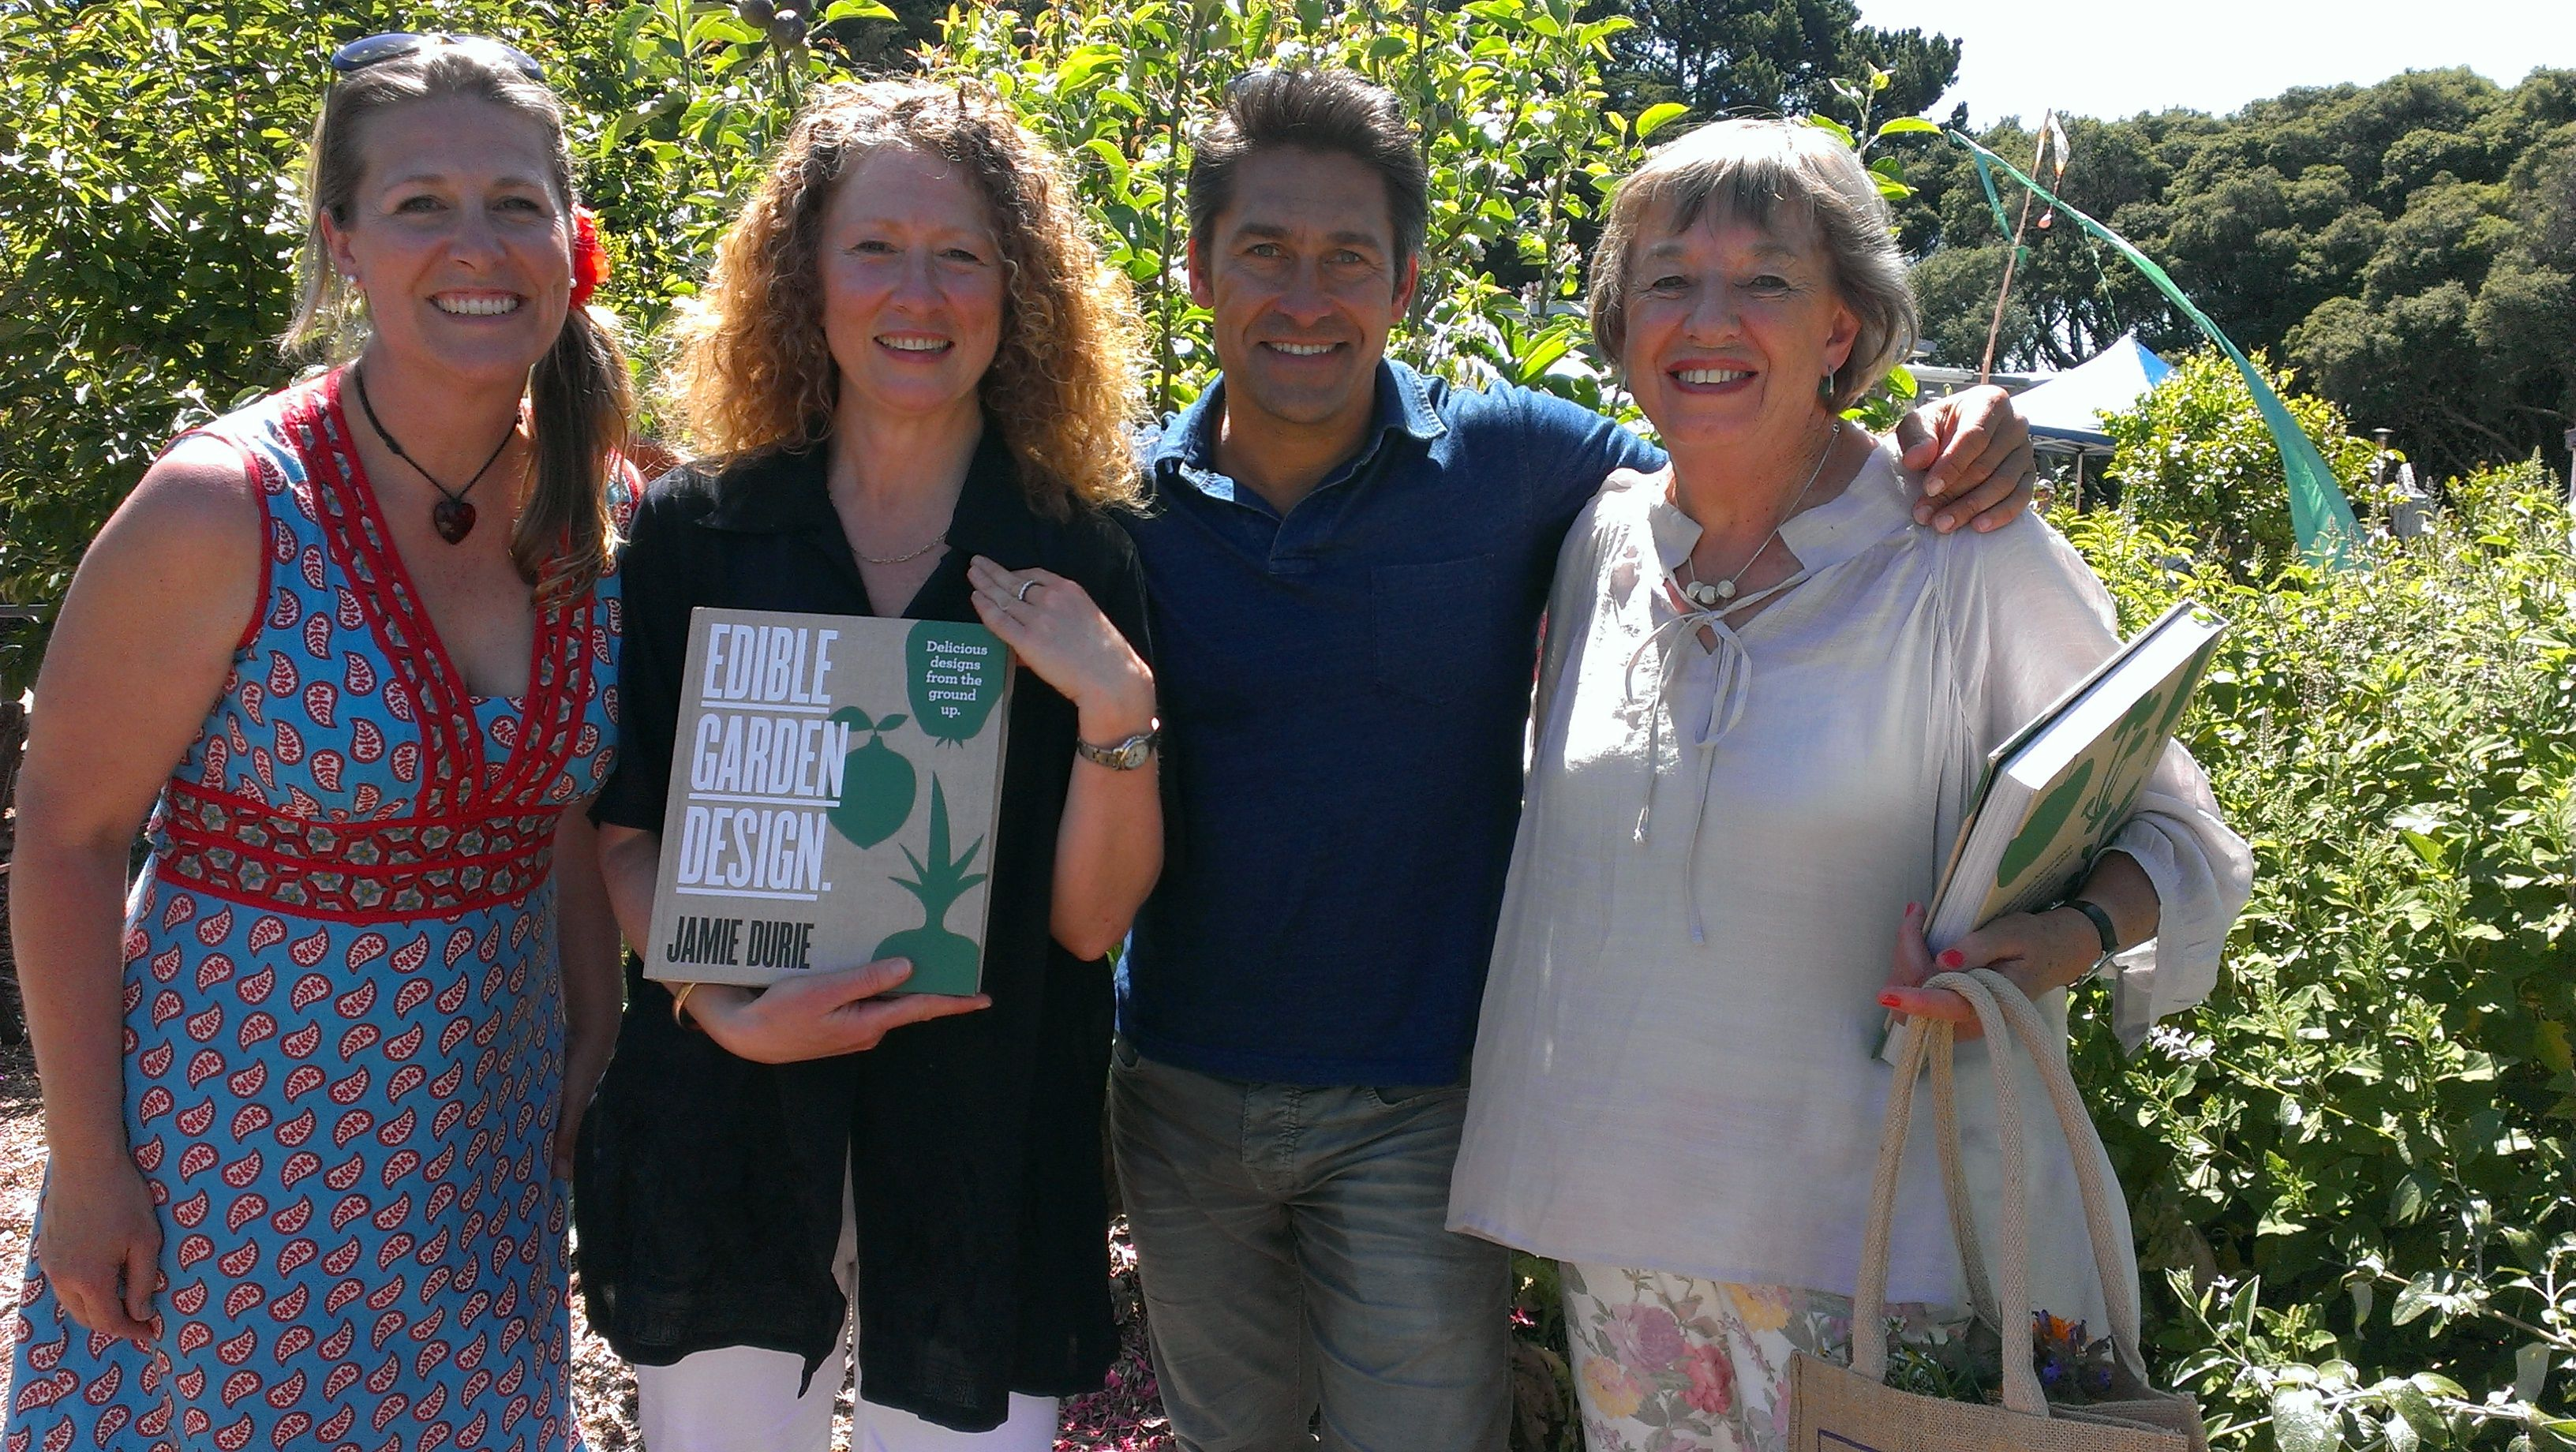 Jamie Durie with the 3 past presidents Sam Smith, Faye Connors & Carmel Smith, of Barwon Heads Community Arts Garden, Vict, Australia